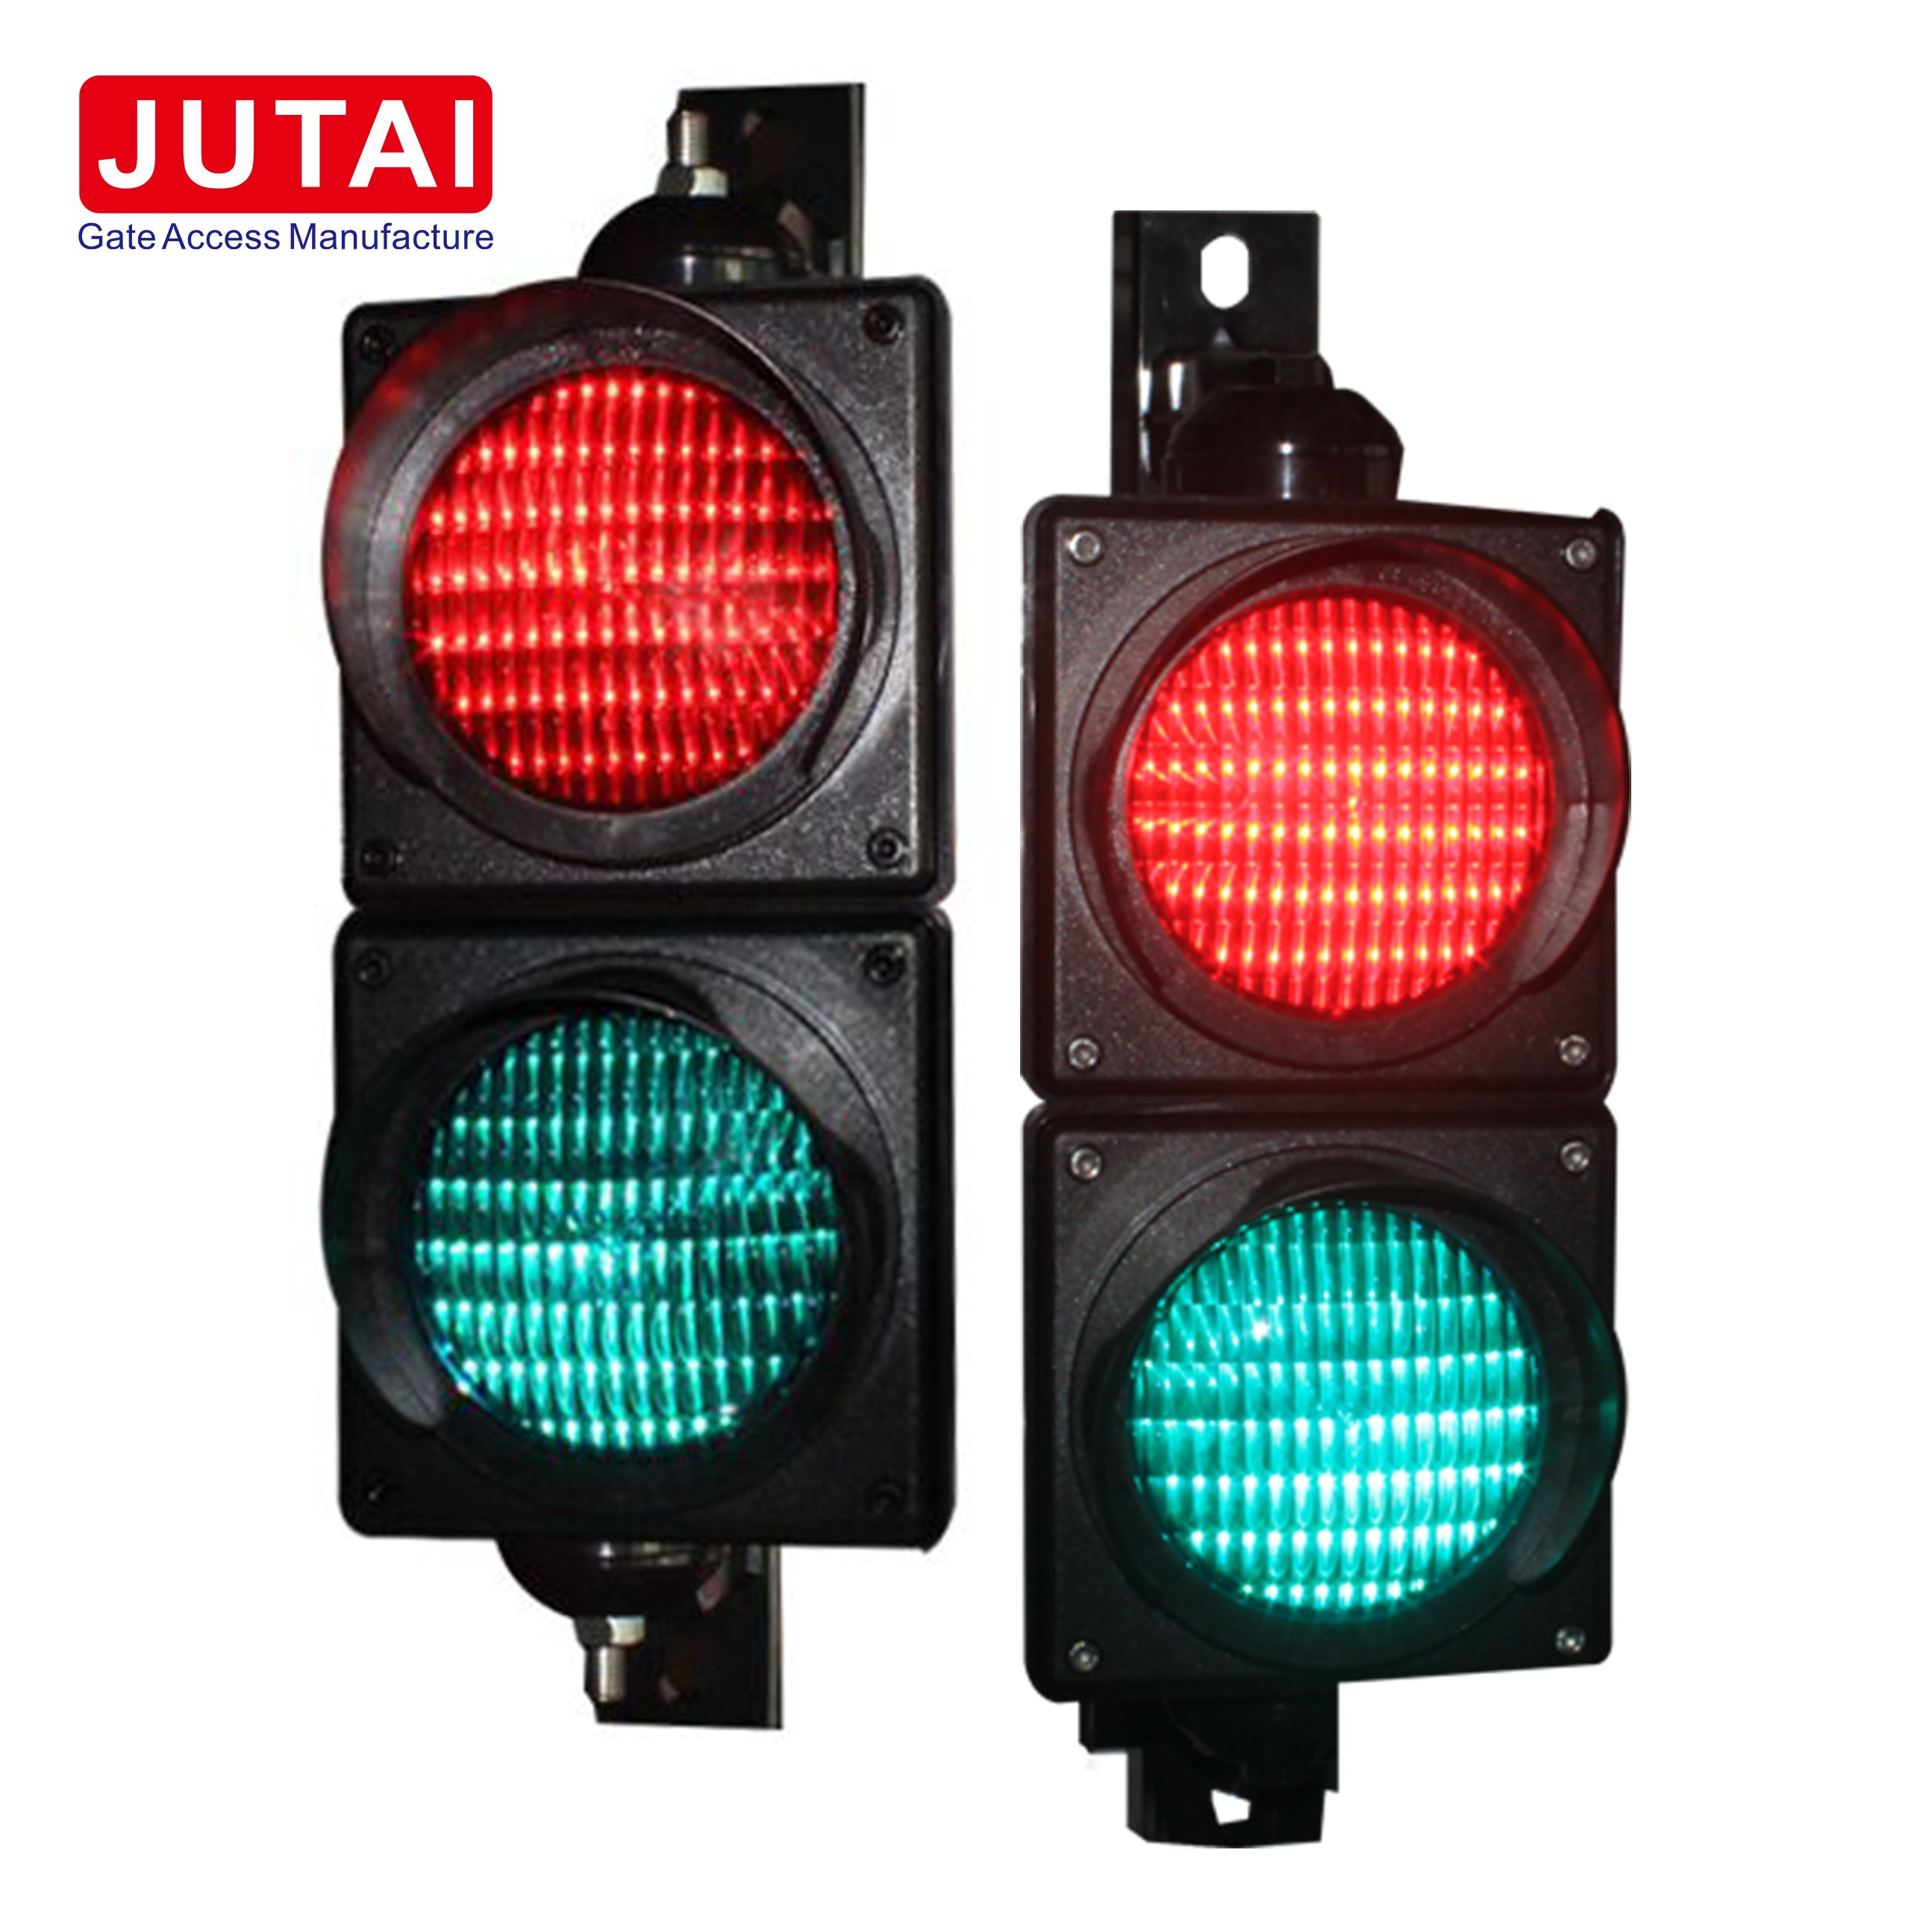 4Inch High Flux Traffic Signal Series For Parking lots Entrance Gate Operator System